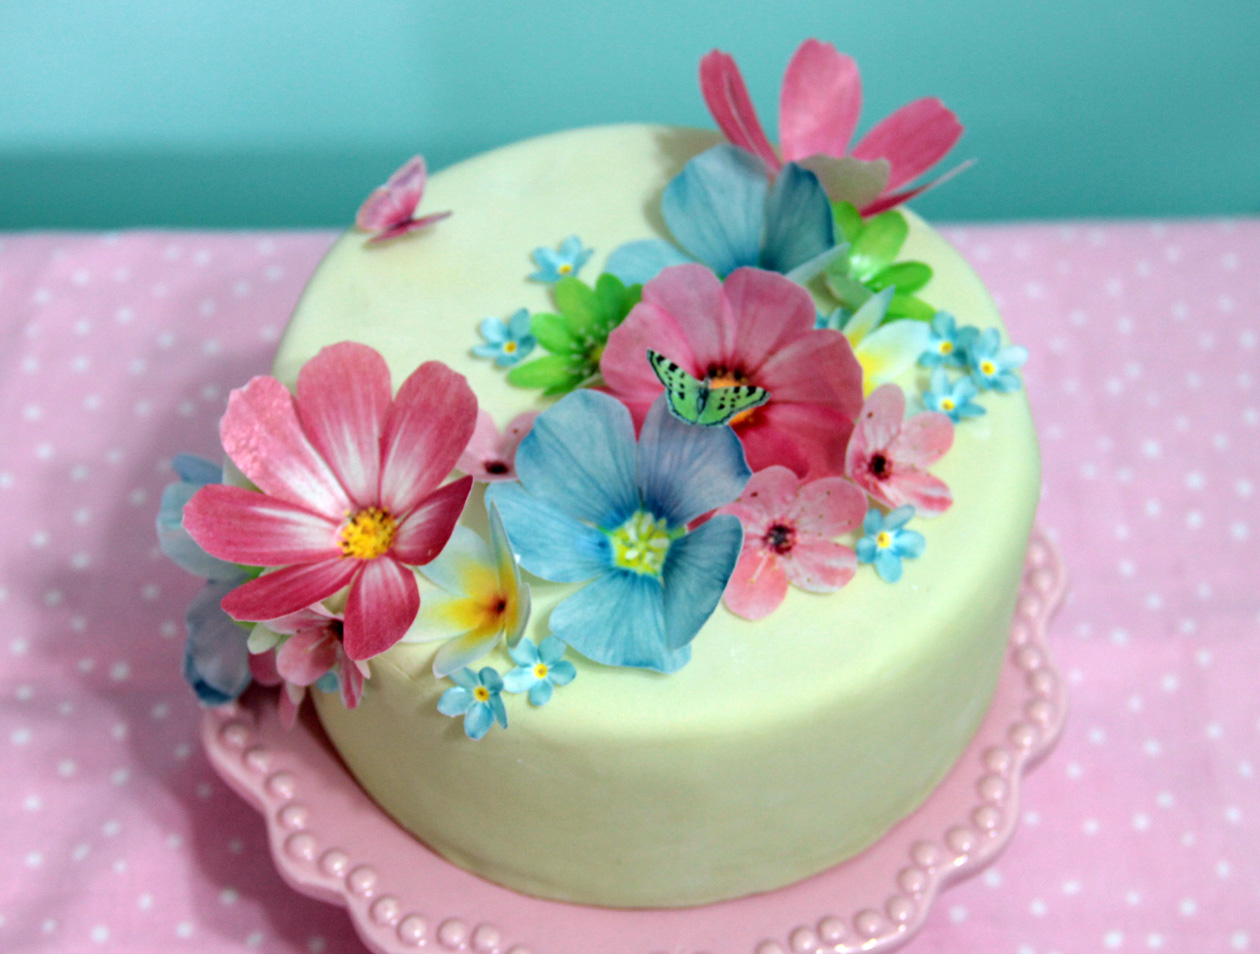 edible paper Supplies and tips for creating edible paper art to decorate cakes, cookies, cupcakes and more.